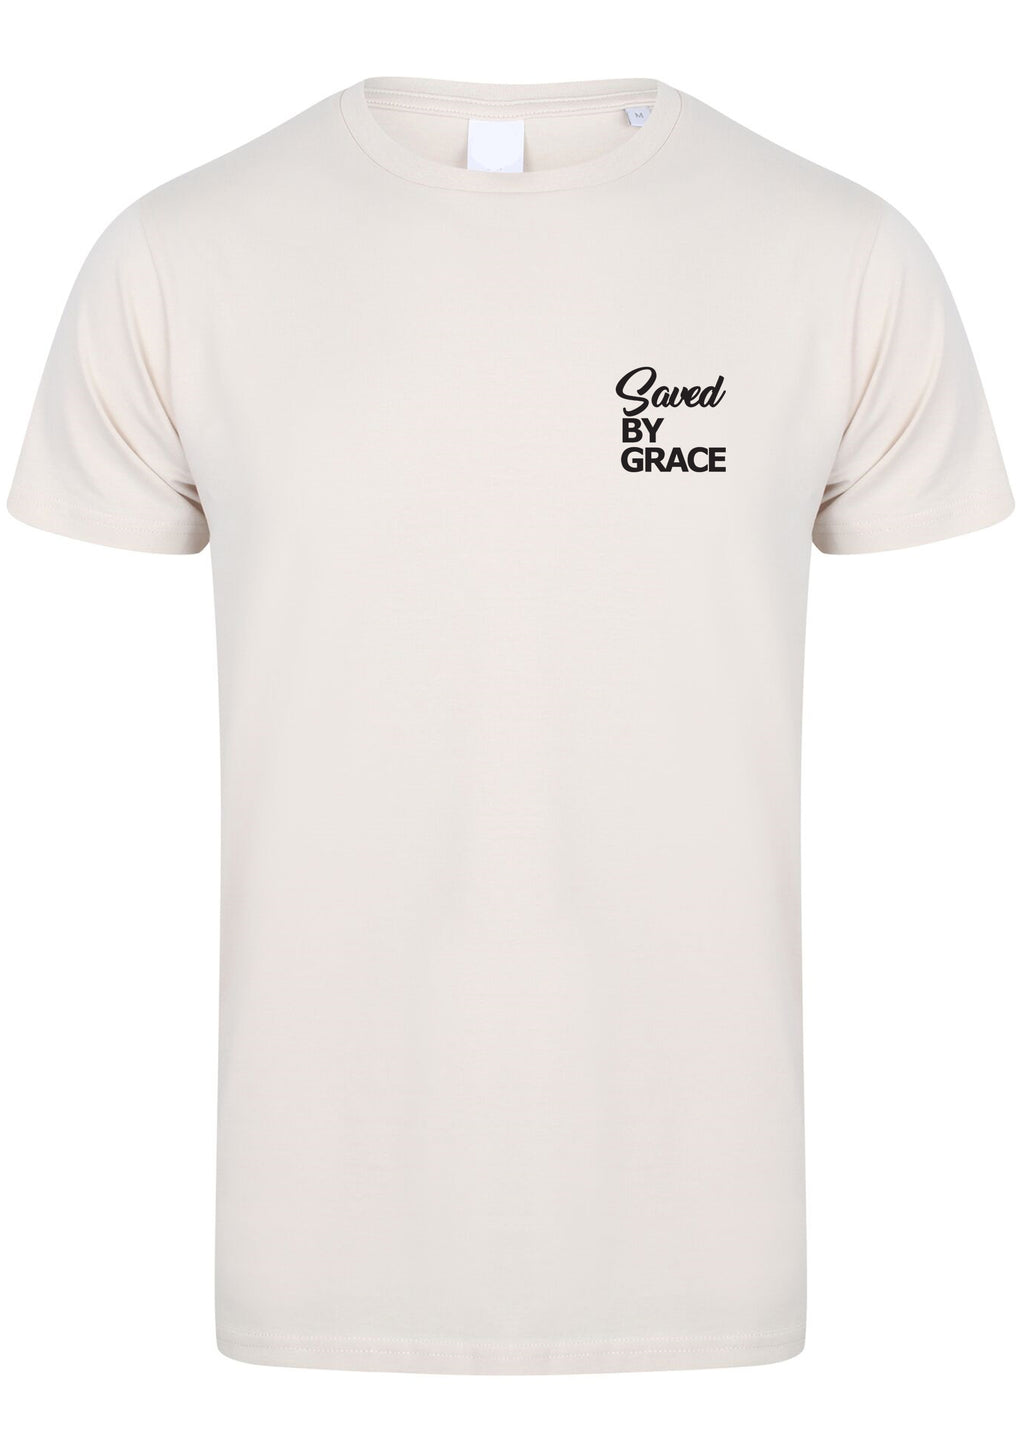 Mens SBG Crew neck S/S Tee (Cream)